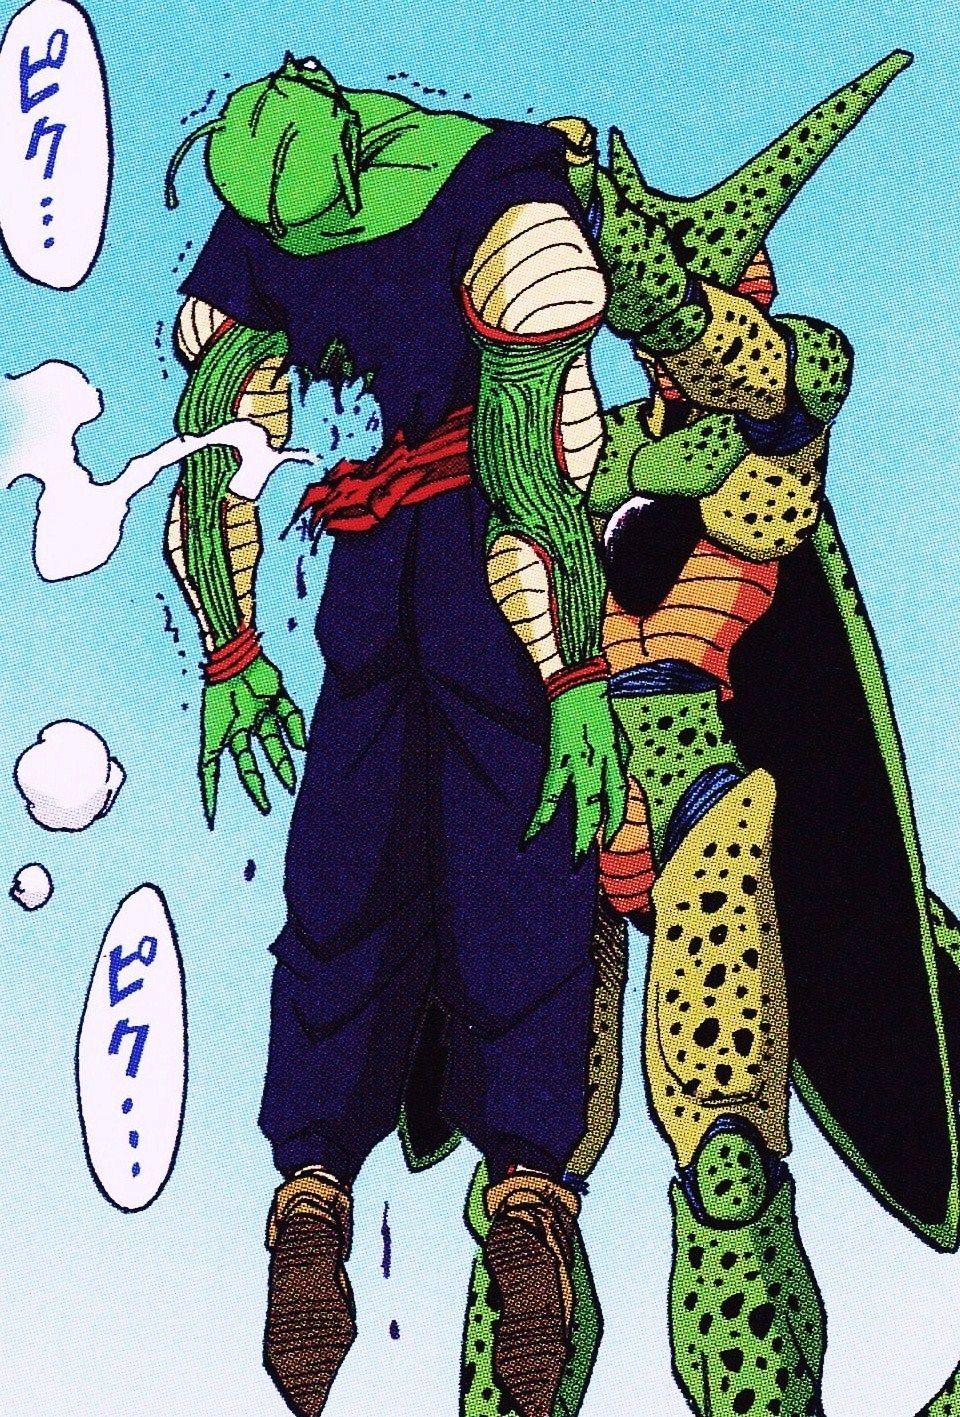 piccolospirit: Piccolo vs Cell 2nd form sources : scans from ...